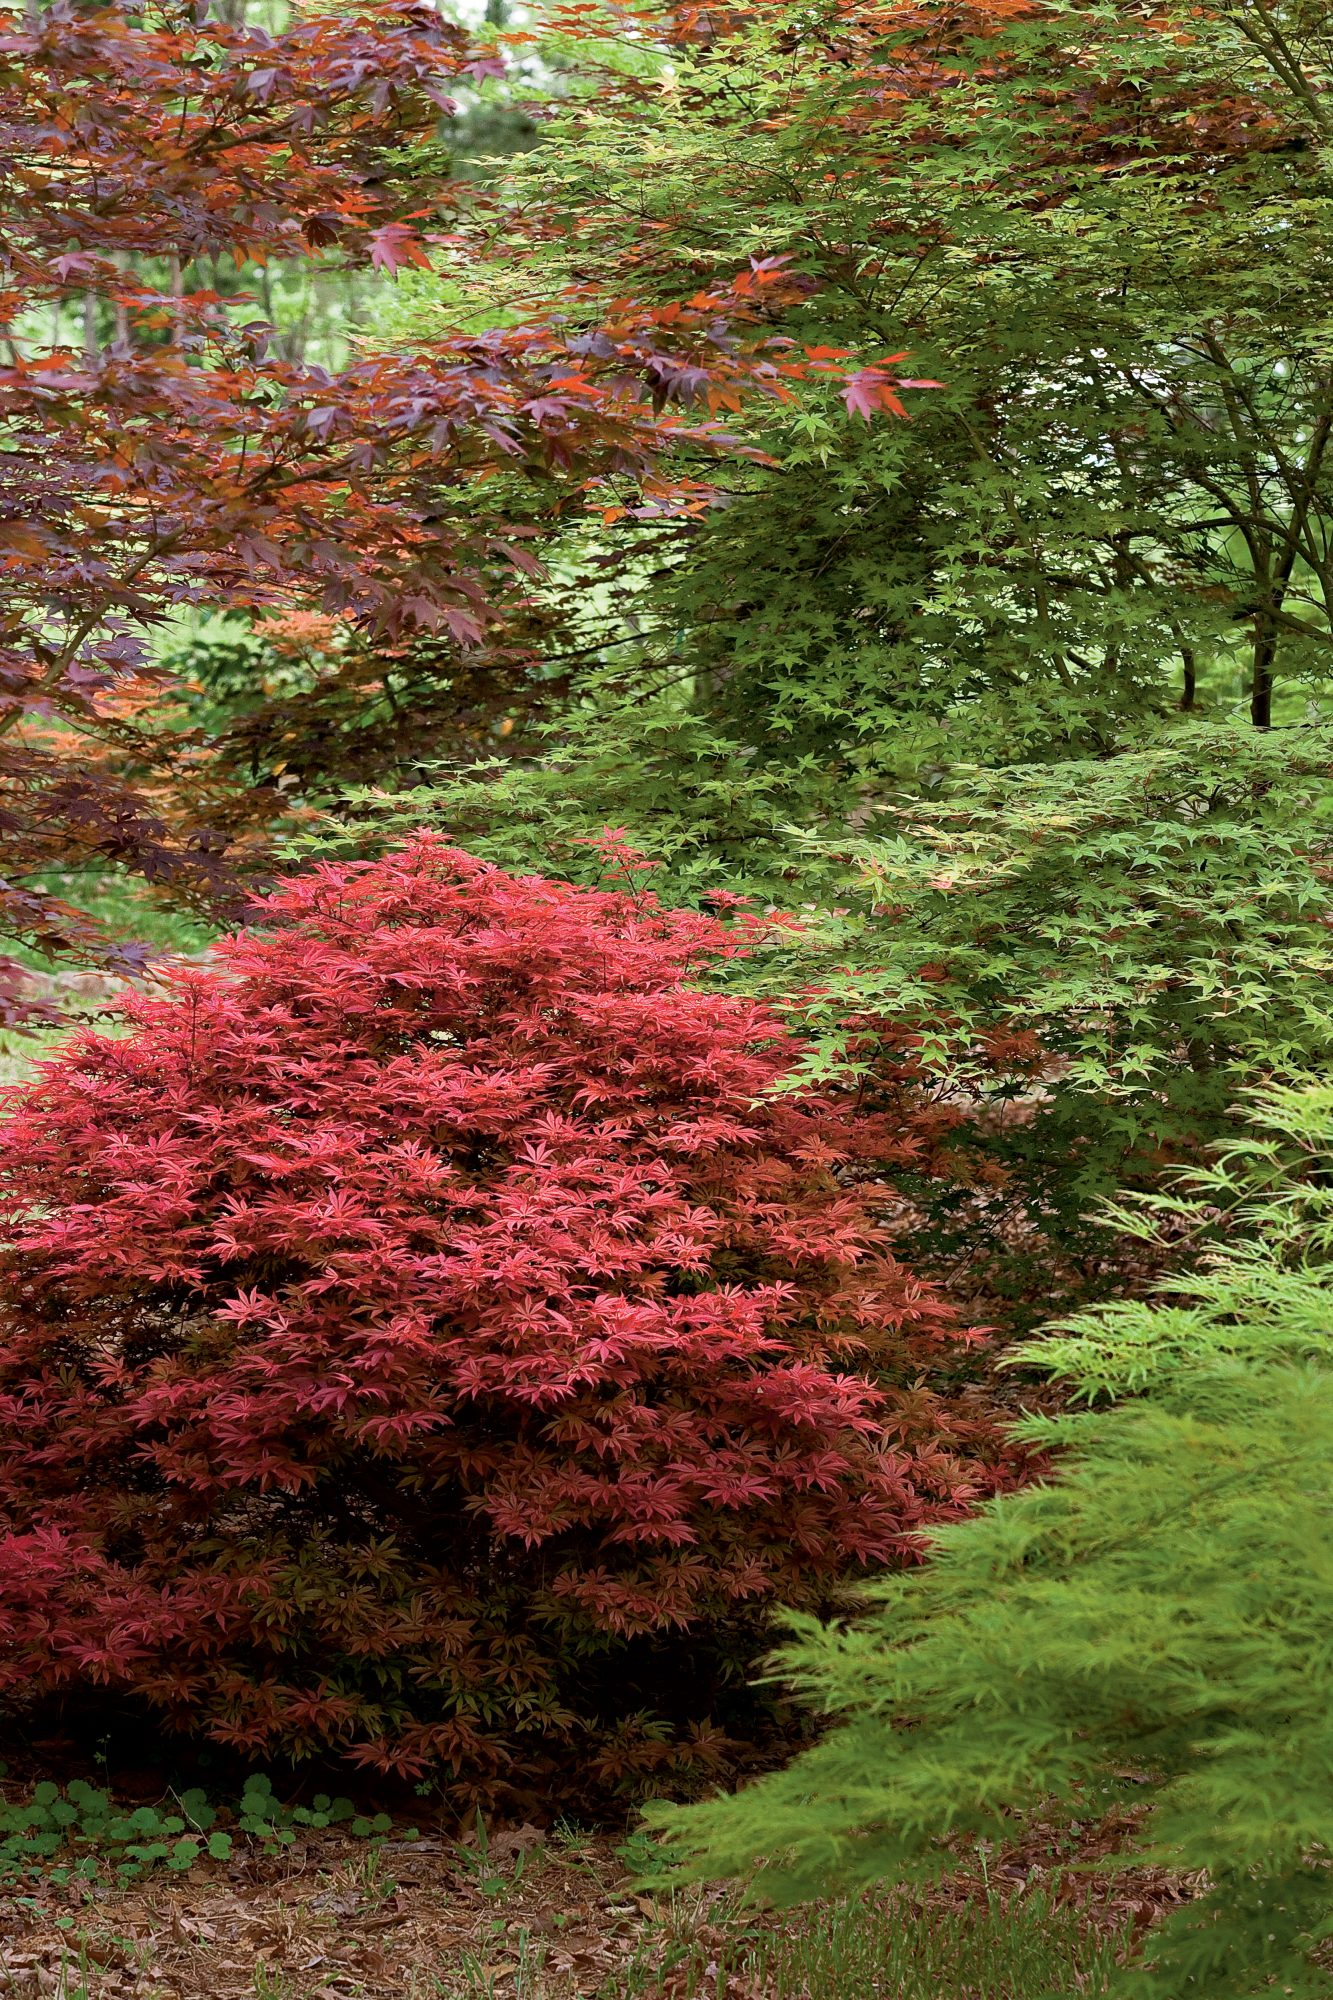 Red Maple Tree in Fall